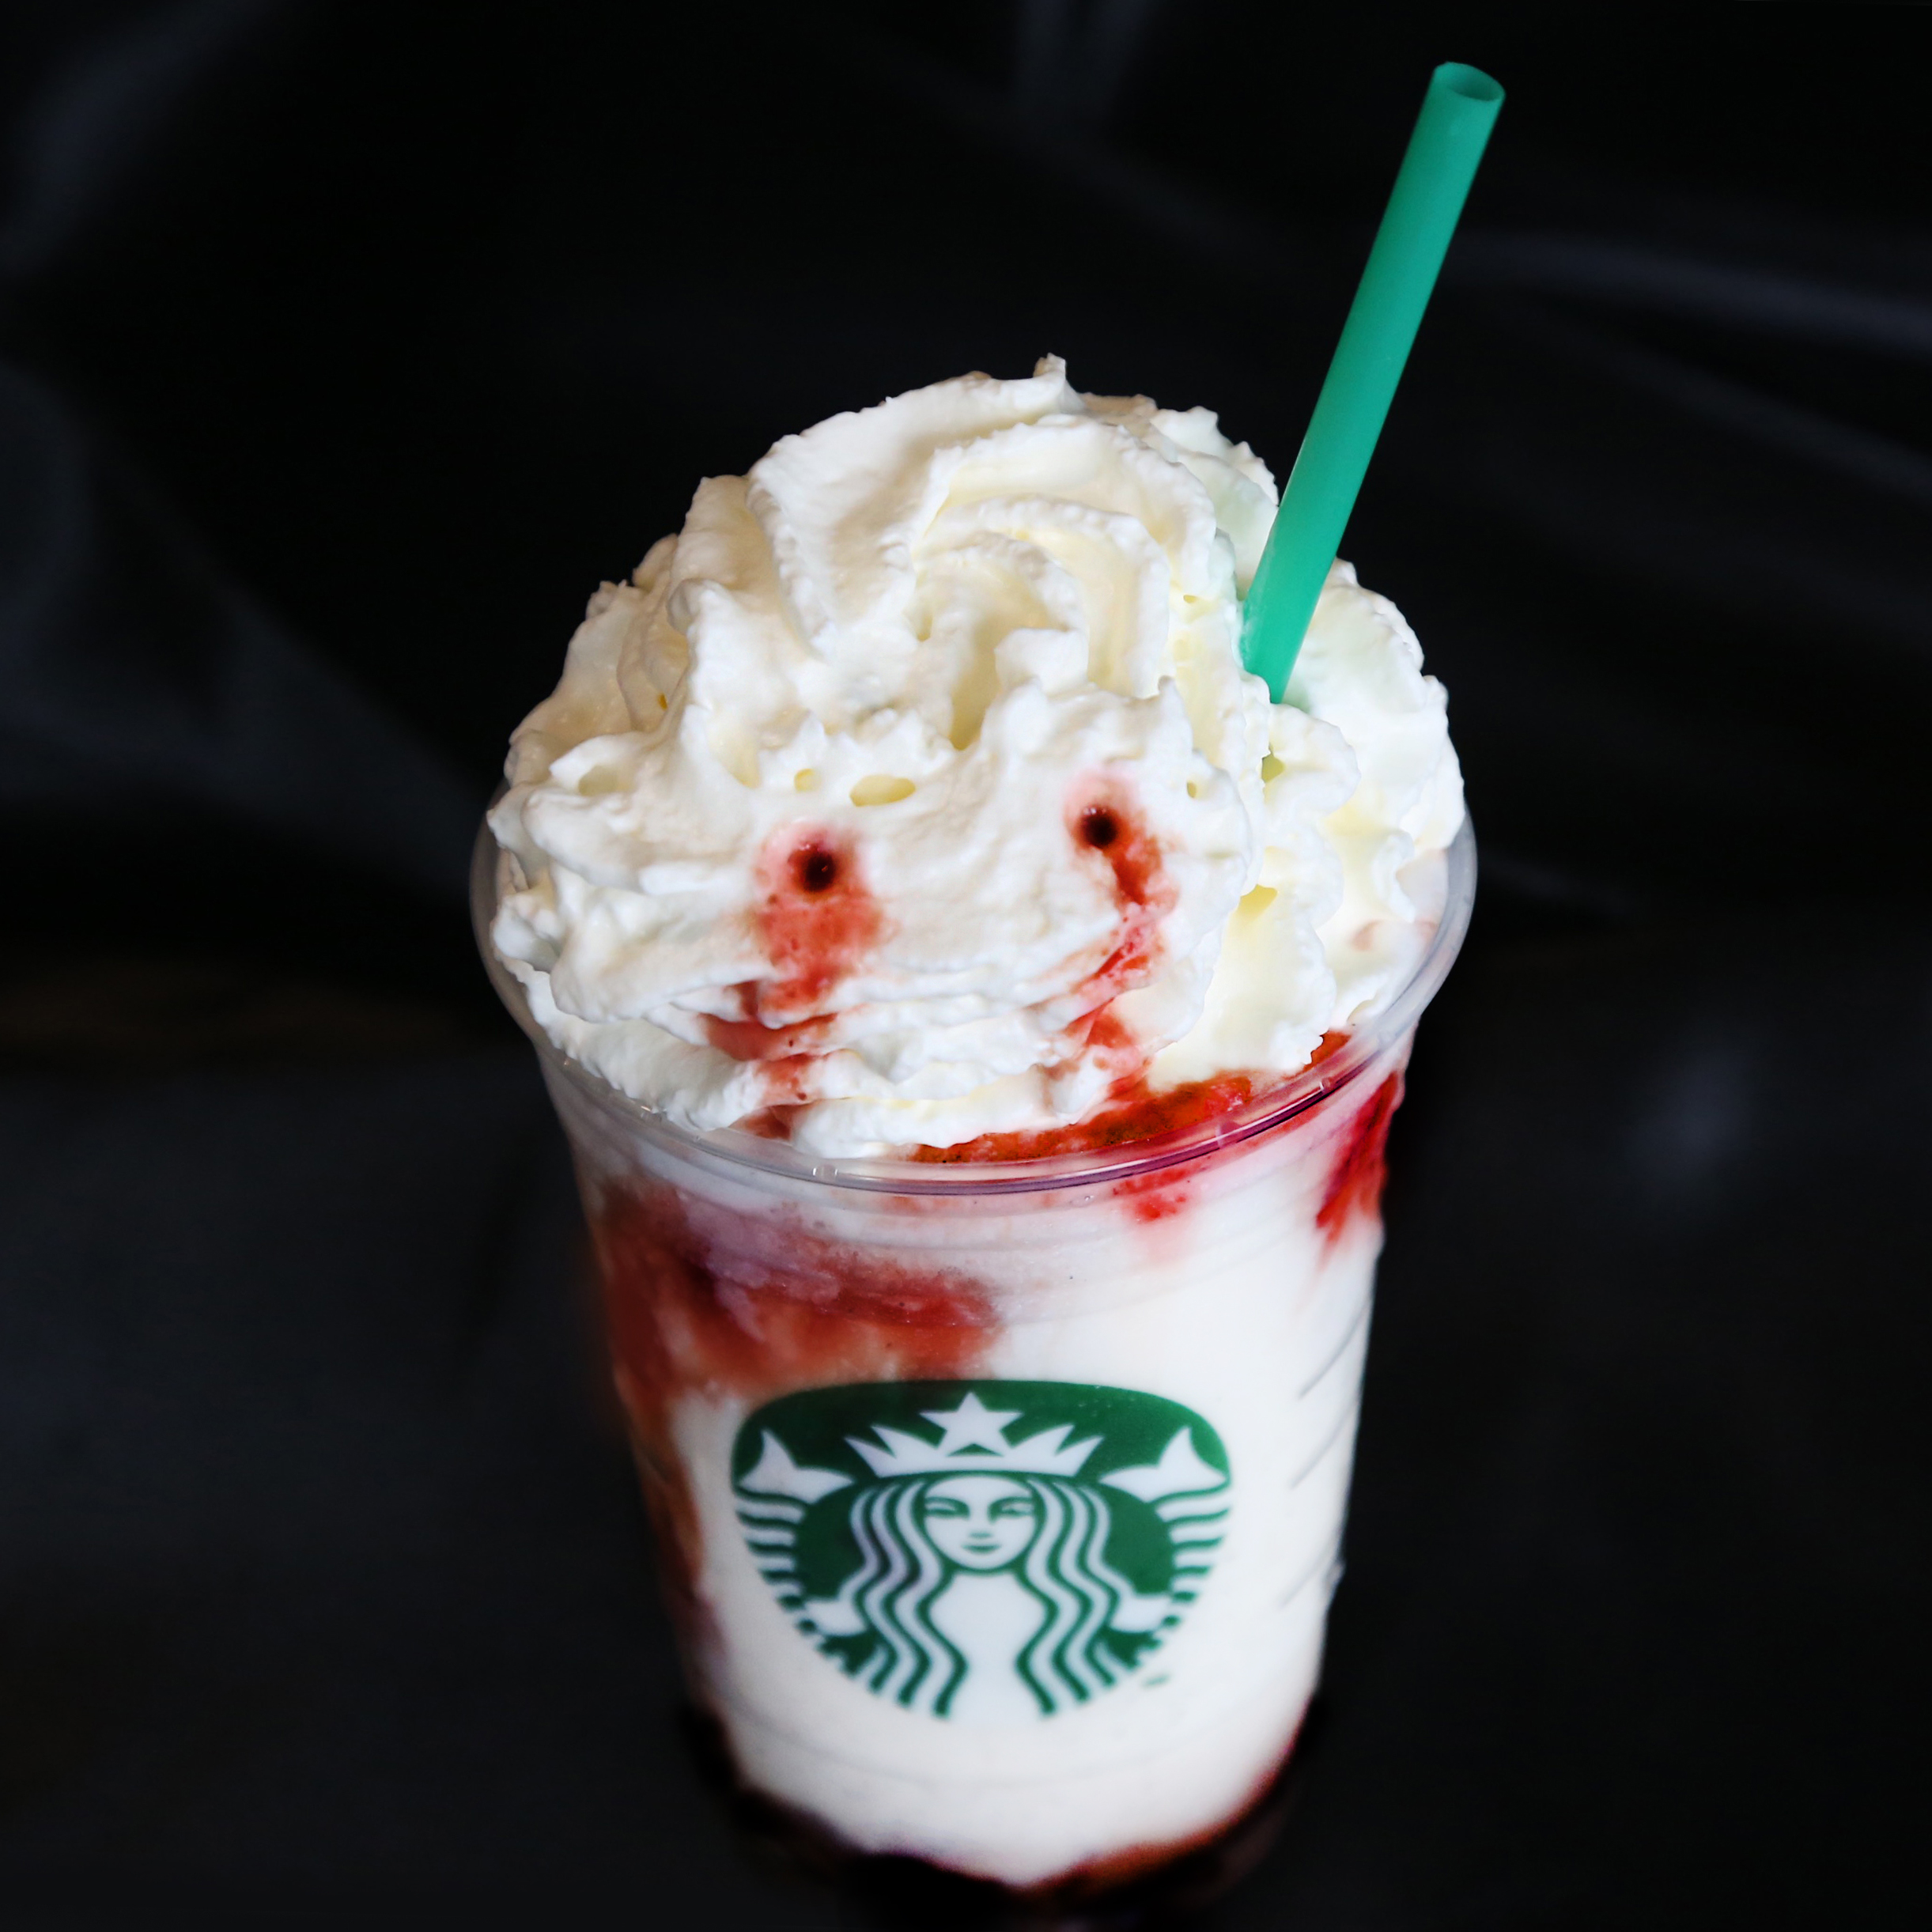 Starbucks brings back its frightful Frappuccino just in time for Halloween.